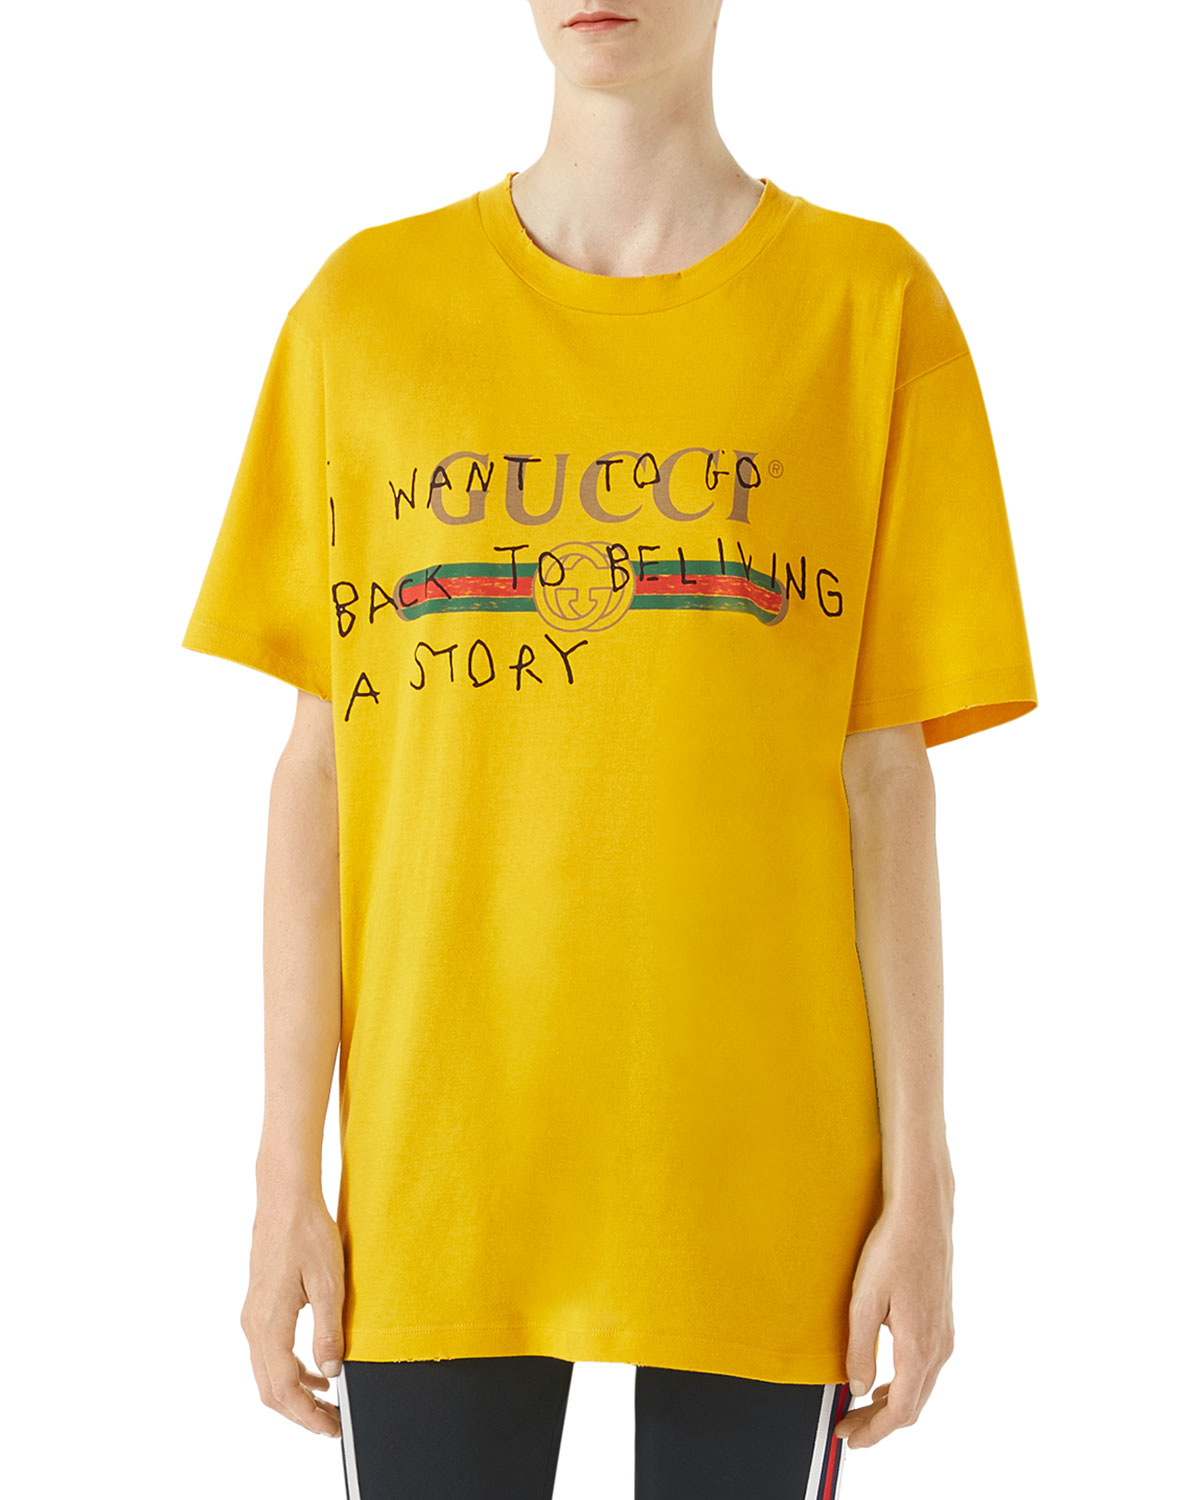 4322d617d225 Womens Replica Gucci T Shirt